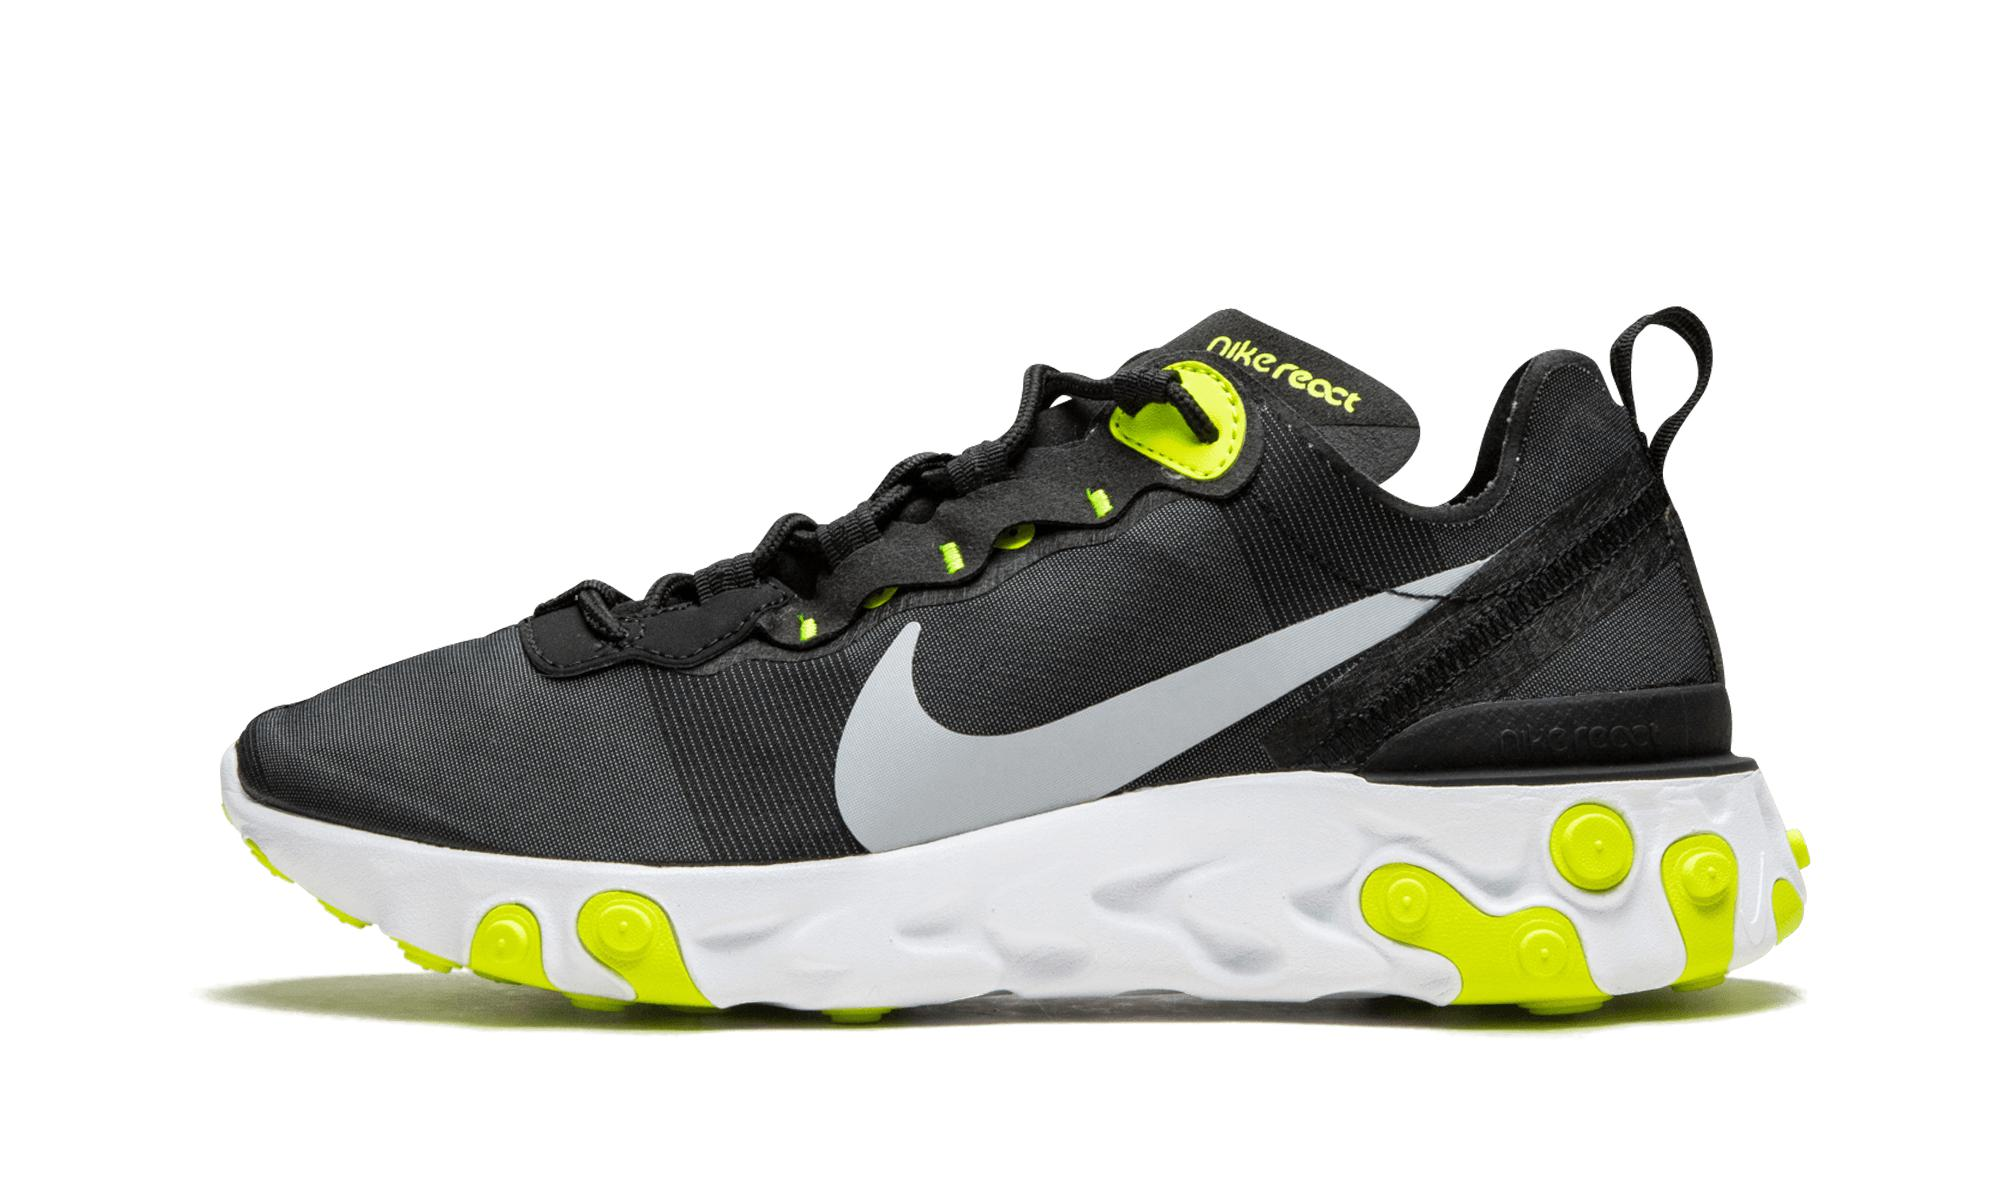 Lyst - Nike Womens React Element 55 in Black for Men 7a53aeb62